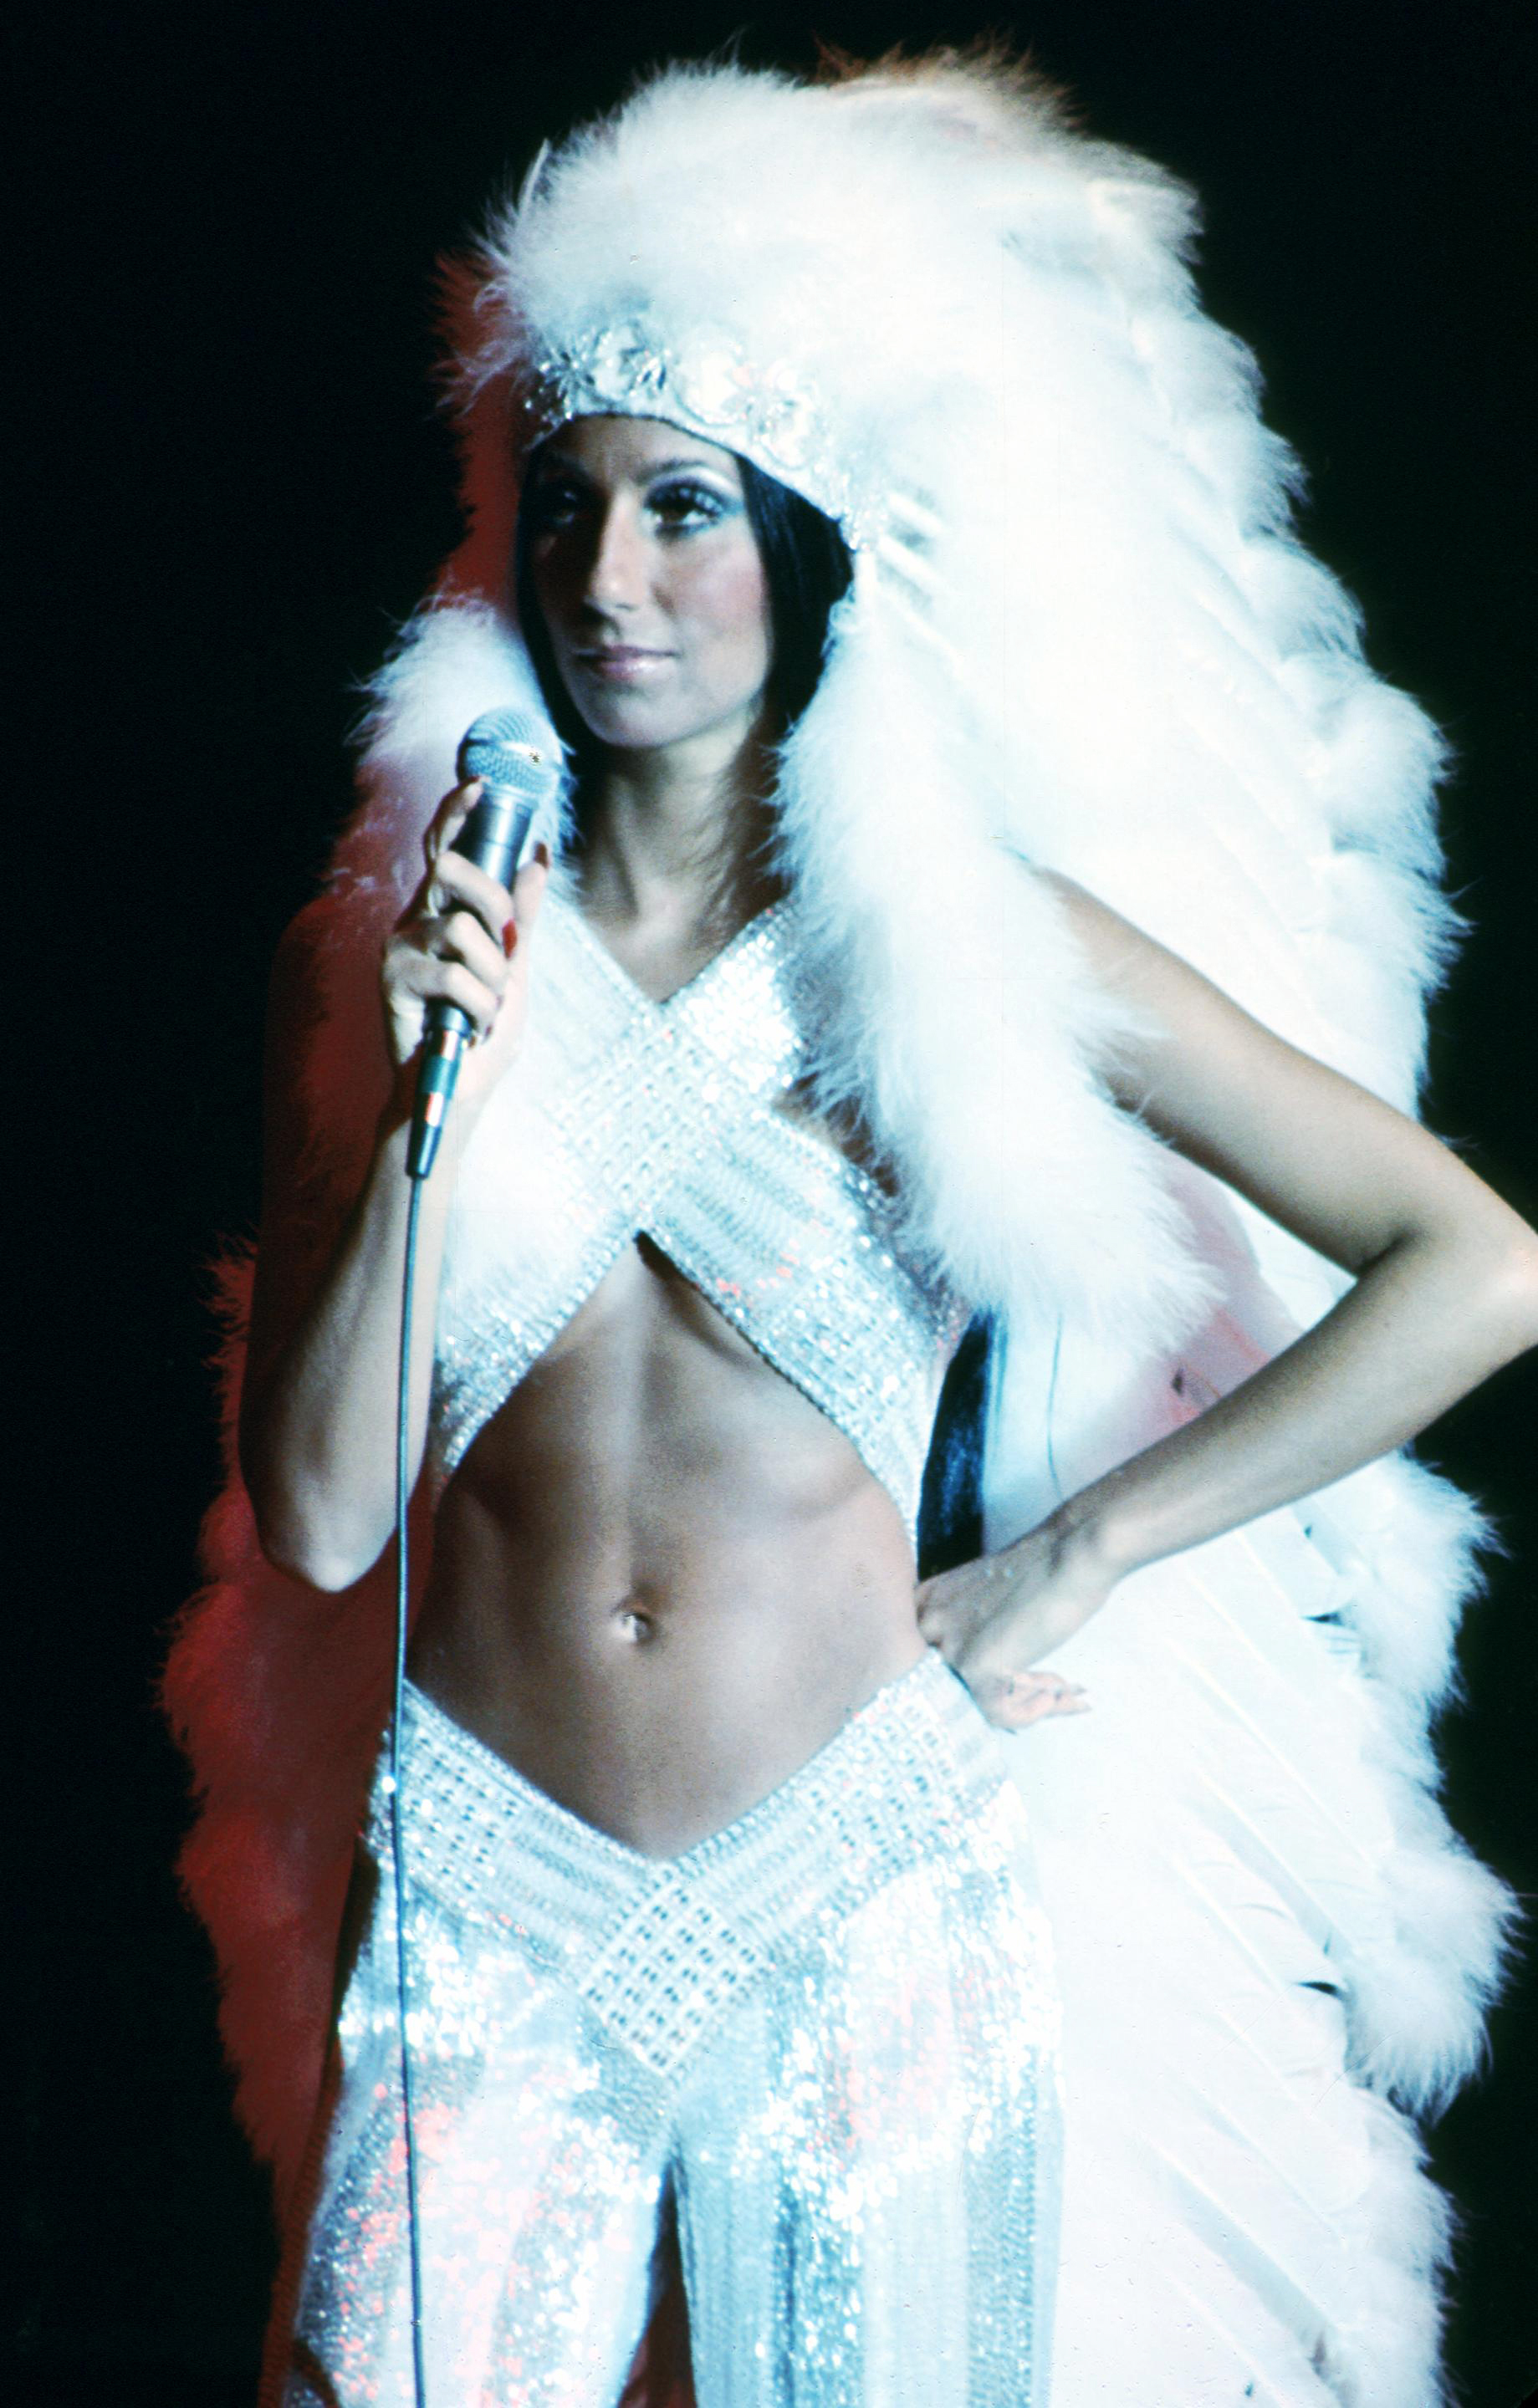 Cher performs at the Rock Music Awards at the Santa Monica Civic Auditorium in Los Angeles on Aug. 9, 1975.